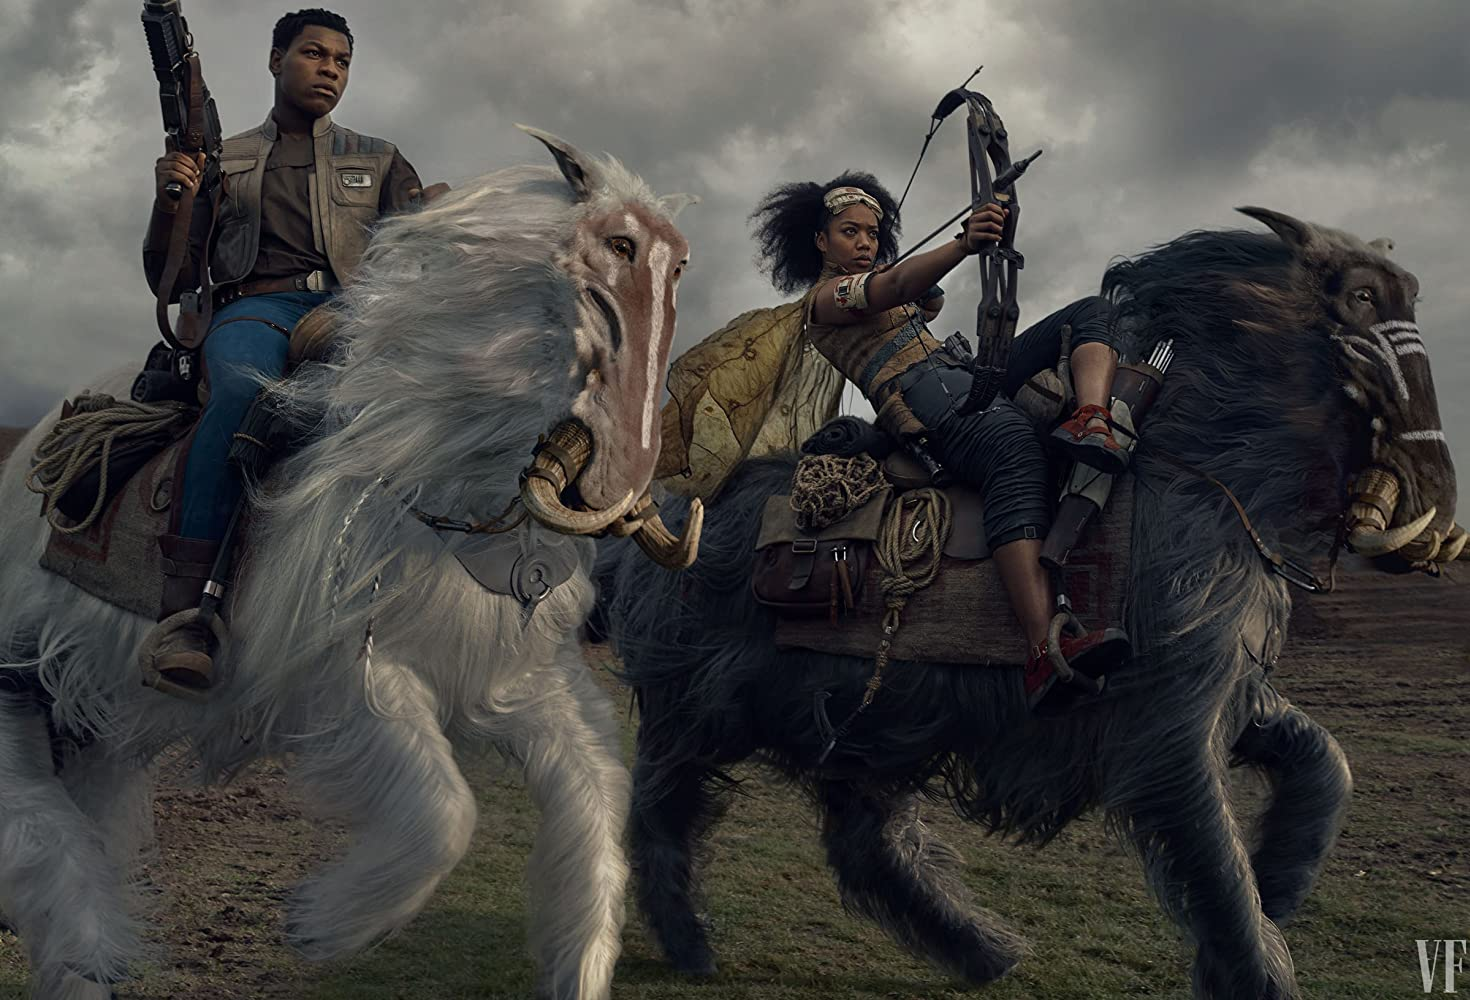 John Boyega and Naomi Ackie in Star Wars: Episode IX - The Rise of Skywalker (2019)